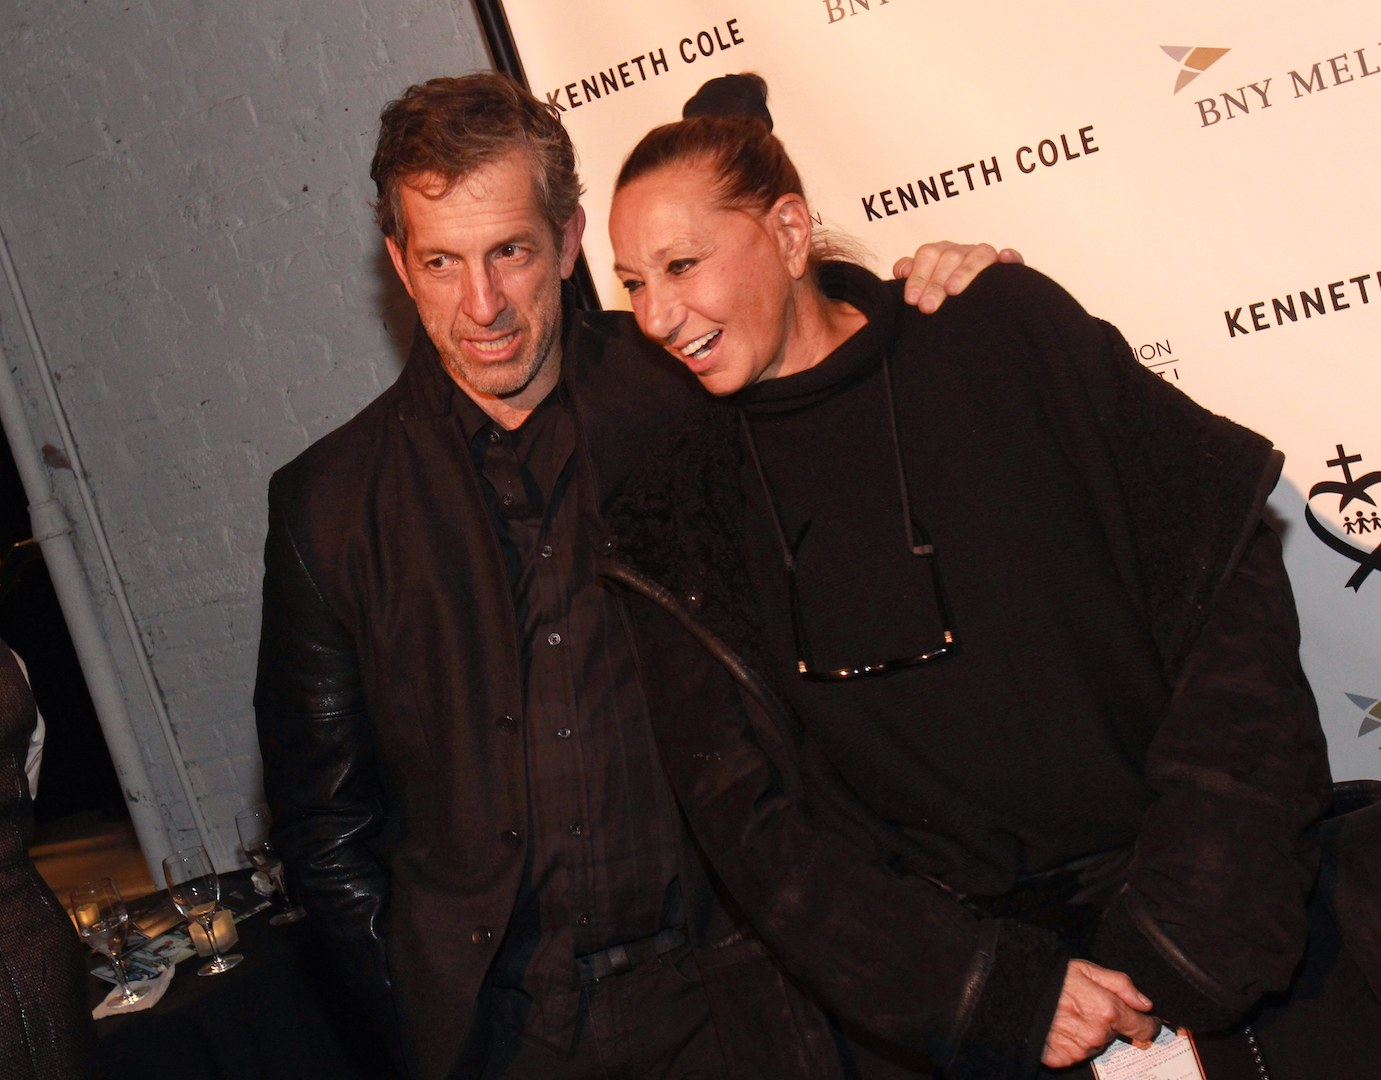 Donna Karan, and Kenneth Cole shoe capsule collaboration